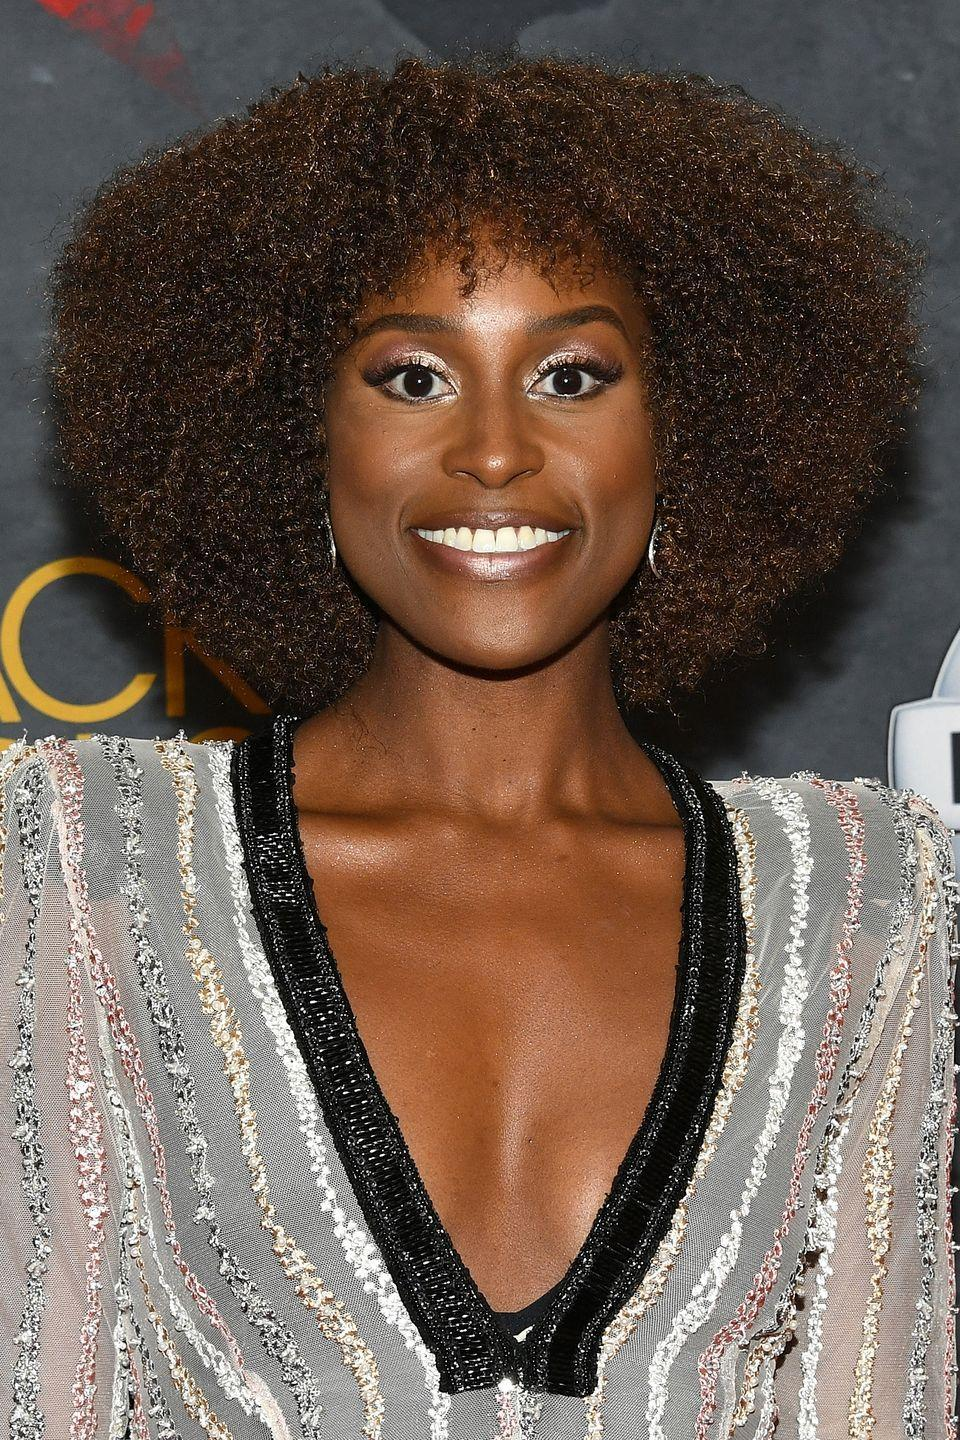 """<p><strong>Issa Rae</strong>'s tight curls create a full, fabulous frame for her face. <a href=""""https://www.goodhousekeeping.com/beauty/hair/g33267765/types-of-bangs/"""" rel=""""nofollow noopener"""" target=""""_blank"""" data-ylk=""""slk:Bangs"""" class=""""link rapid-noclick-resp"""">Bangs</a> of the same texture are the perfect finishing touch.</p>"""